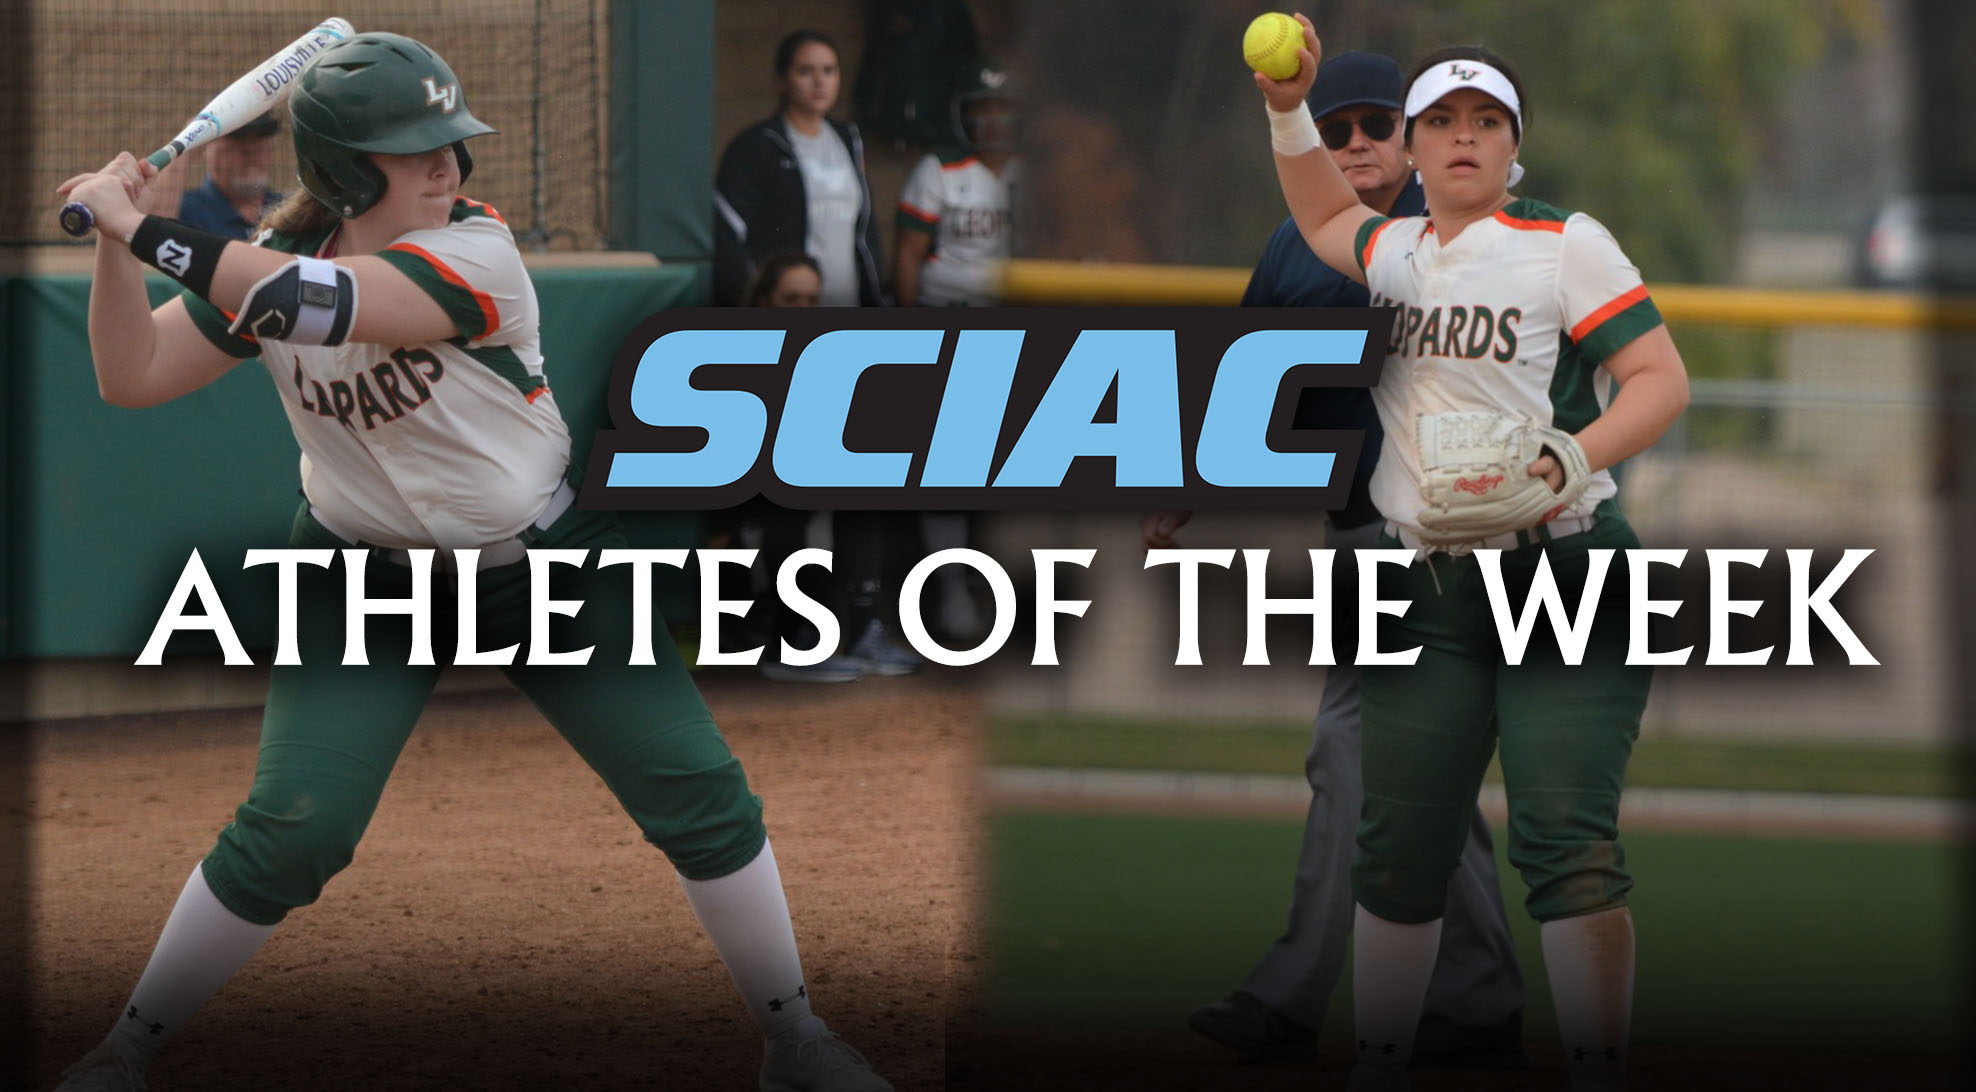 Underwood, Navarro named SCIAC Athletes of the Week